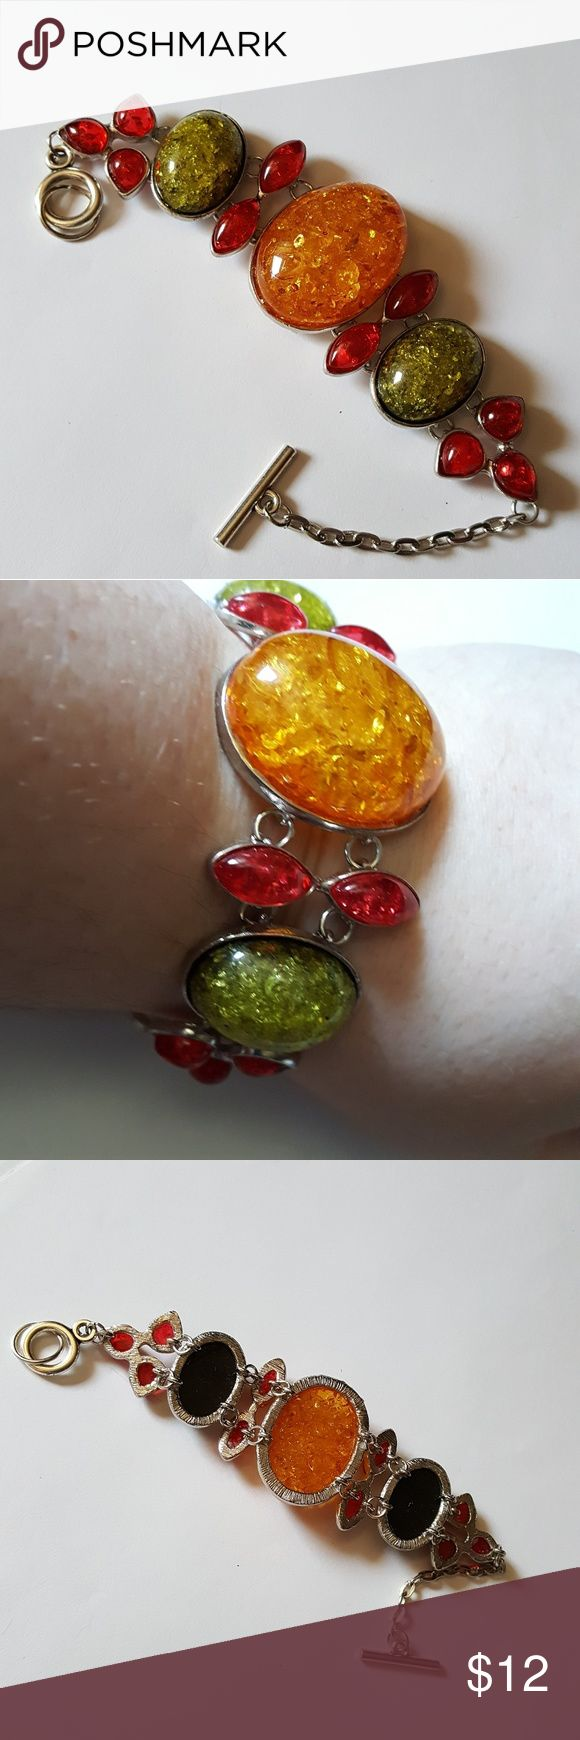 Unique Amber Bracelet This is a unique and pretty vintage style Amber Bracelet. Brand new. Silvertone. Fits up to 7 1/2 inch wrist Vintage Jewelry Bracelets